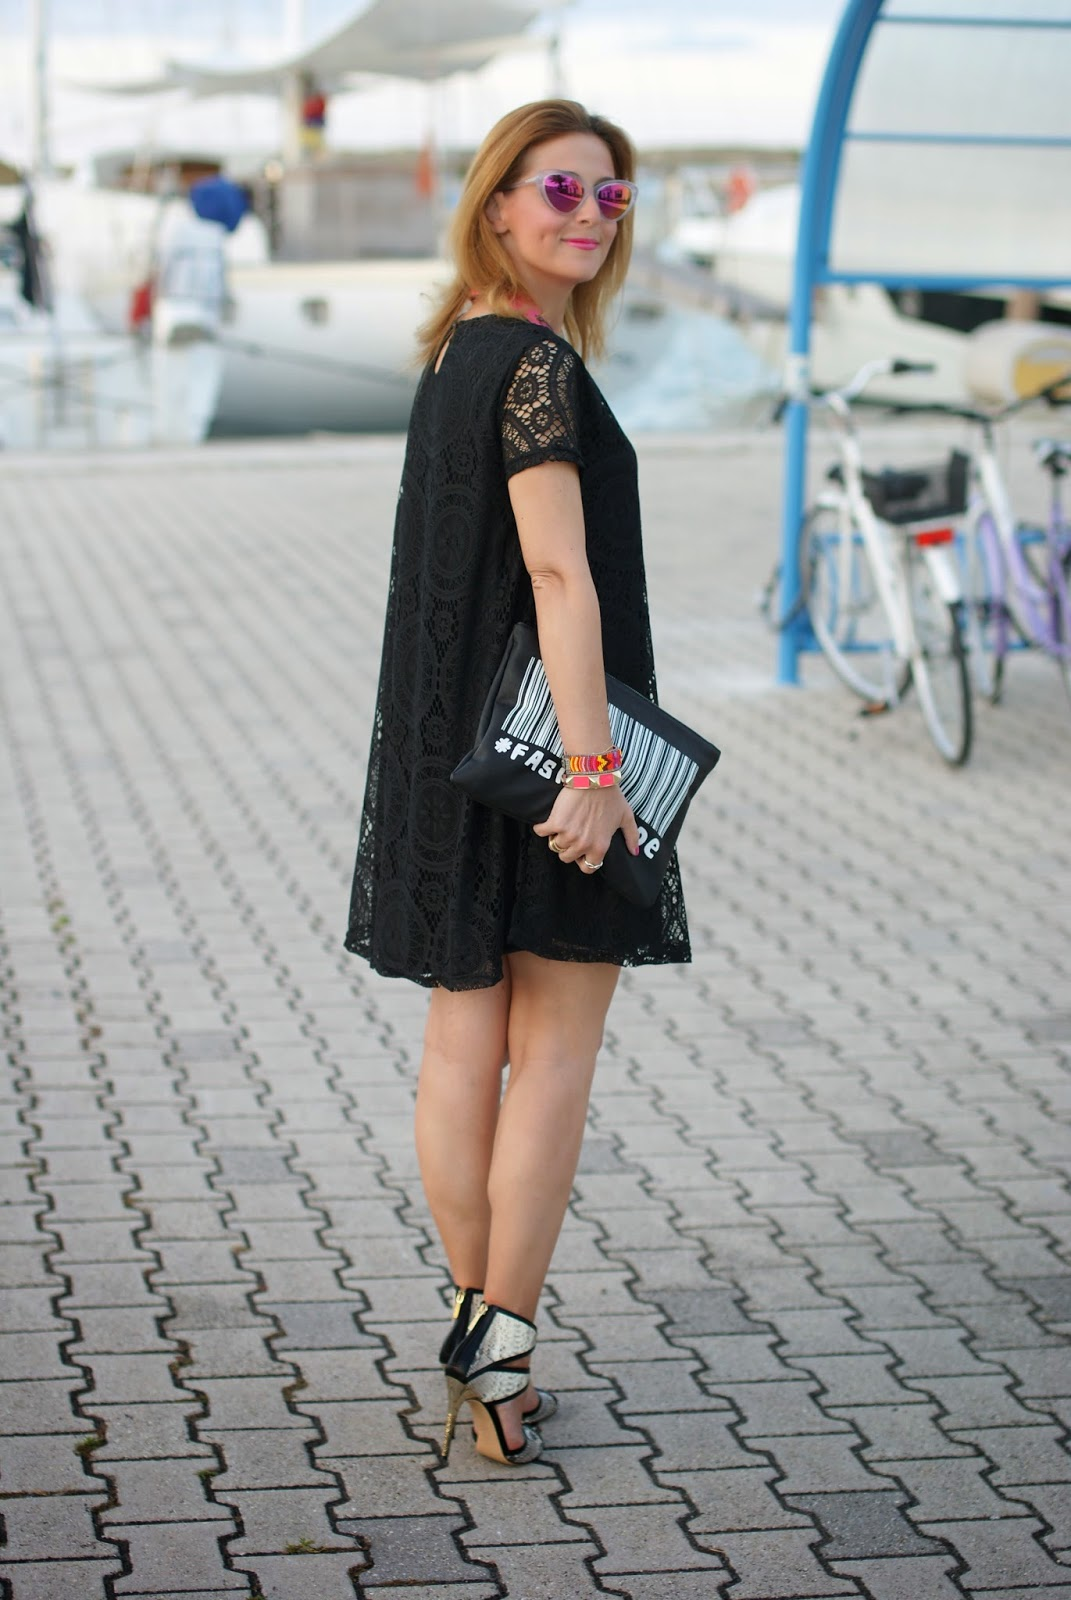 Essequadro eyewear, Fato creazioni, Blackfive lace dress, Roberto Botticelli sandals, pink sunglasses, Zara urban code clutch, Fashion and Cookies, fashion blogger